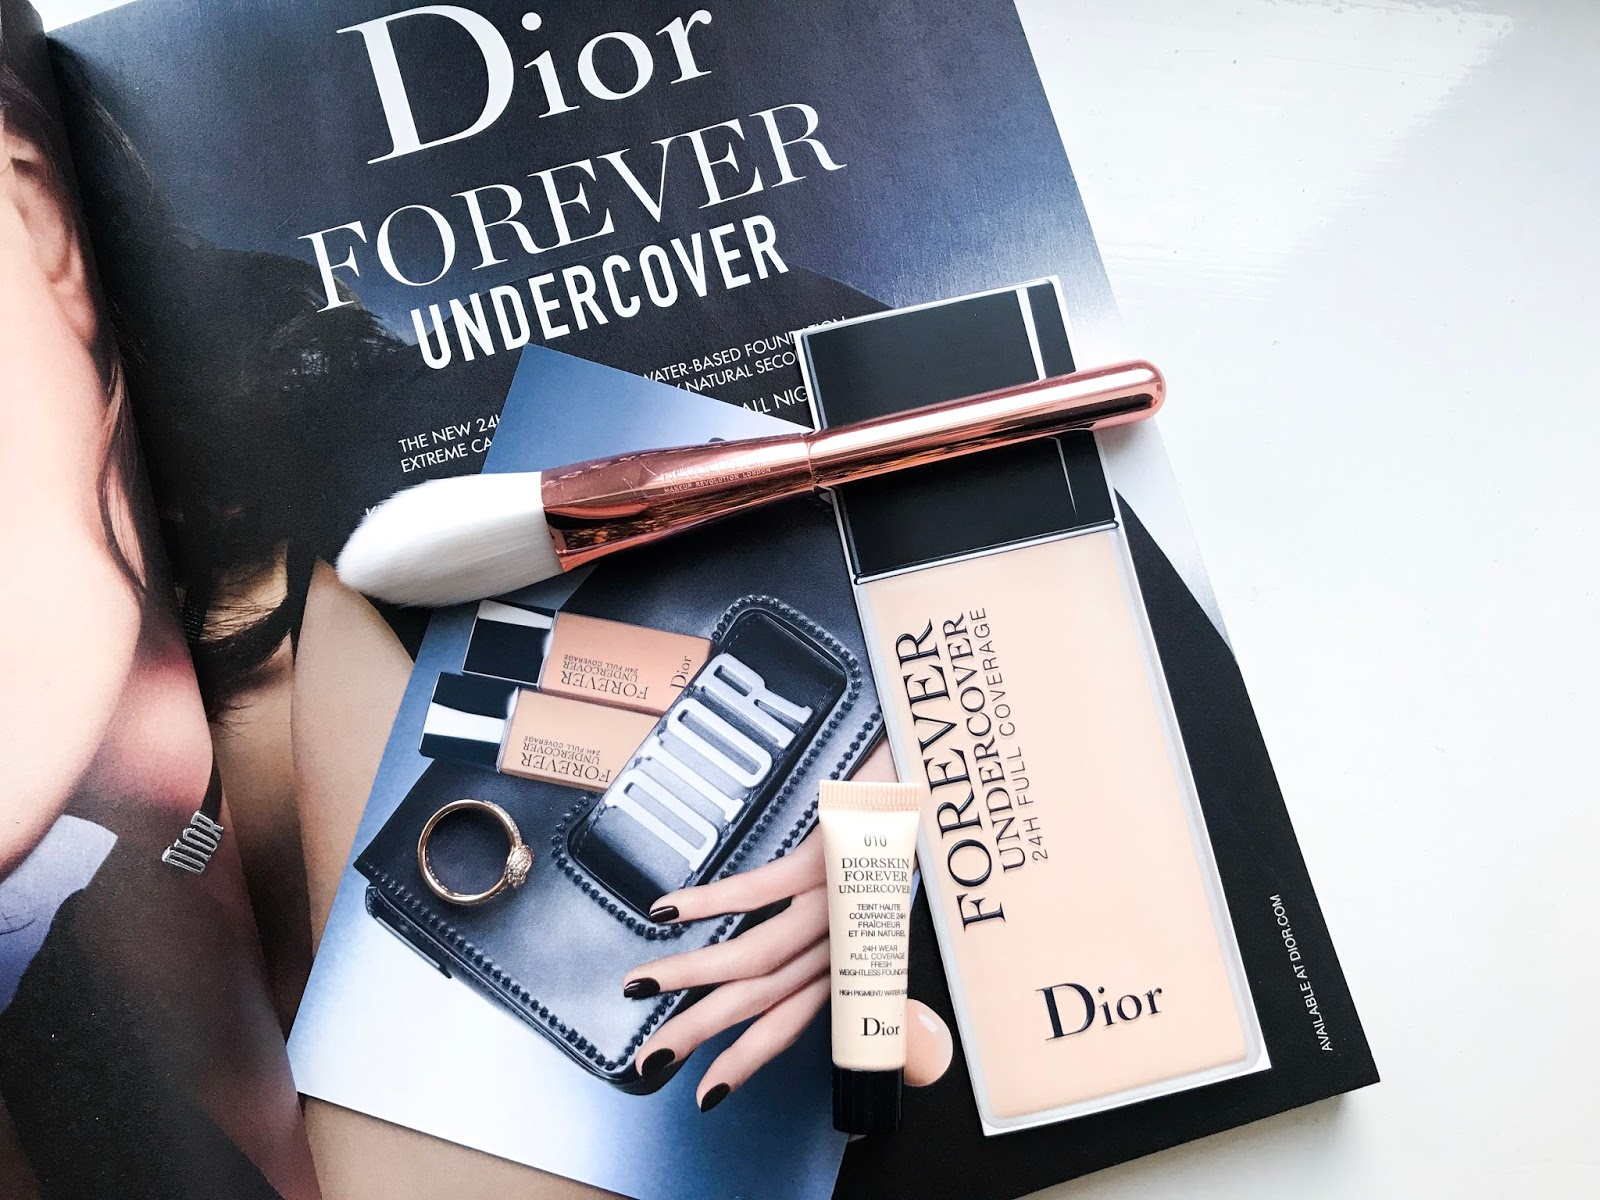 c5c898e379 Diorskin Forever Undercover Foundation - Does it really last 24 ...